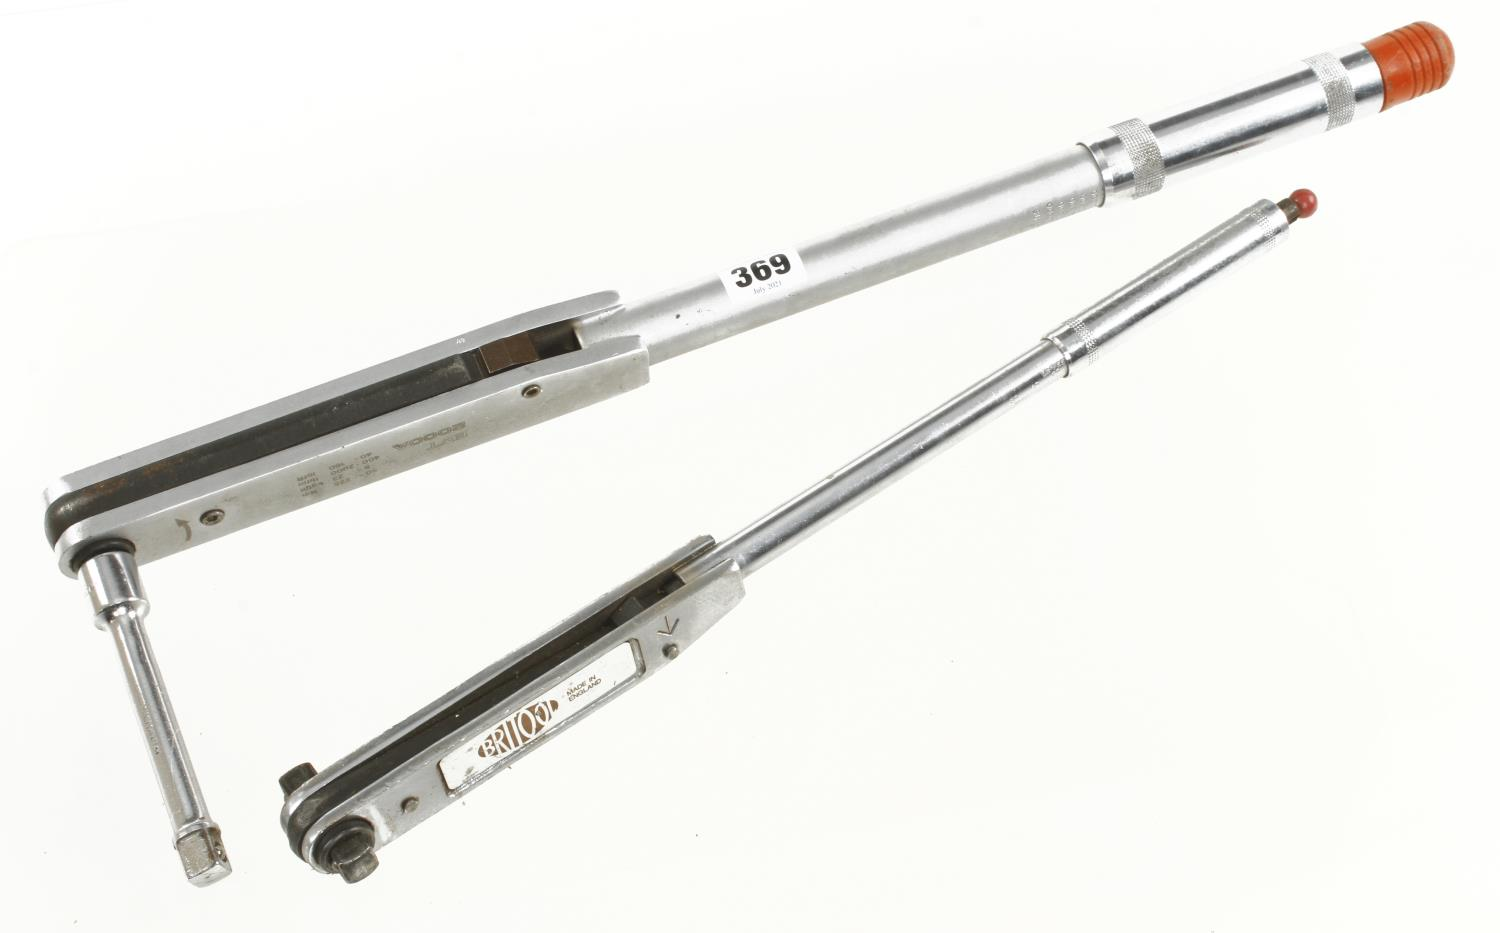 Two engineer's torque wrenches by BRITOOL G+